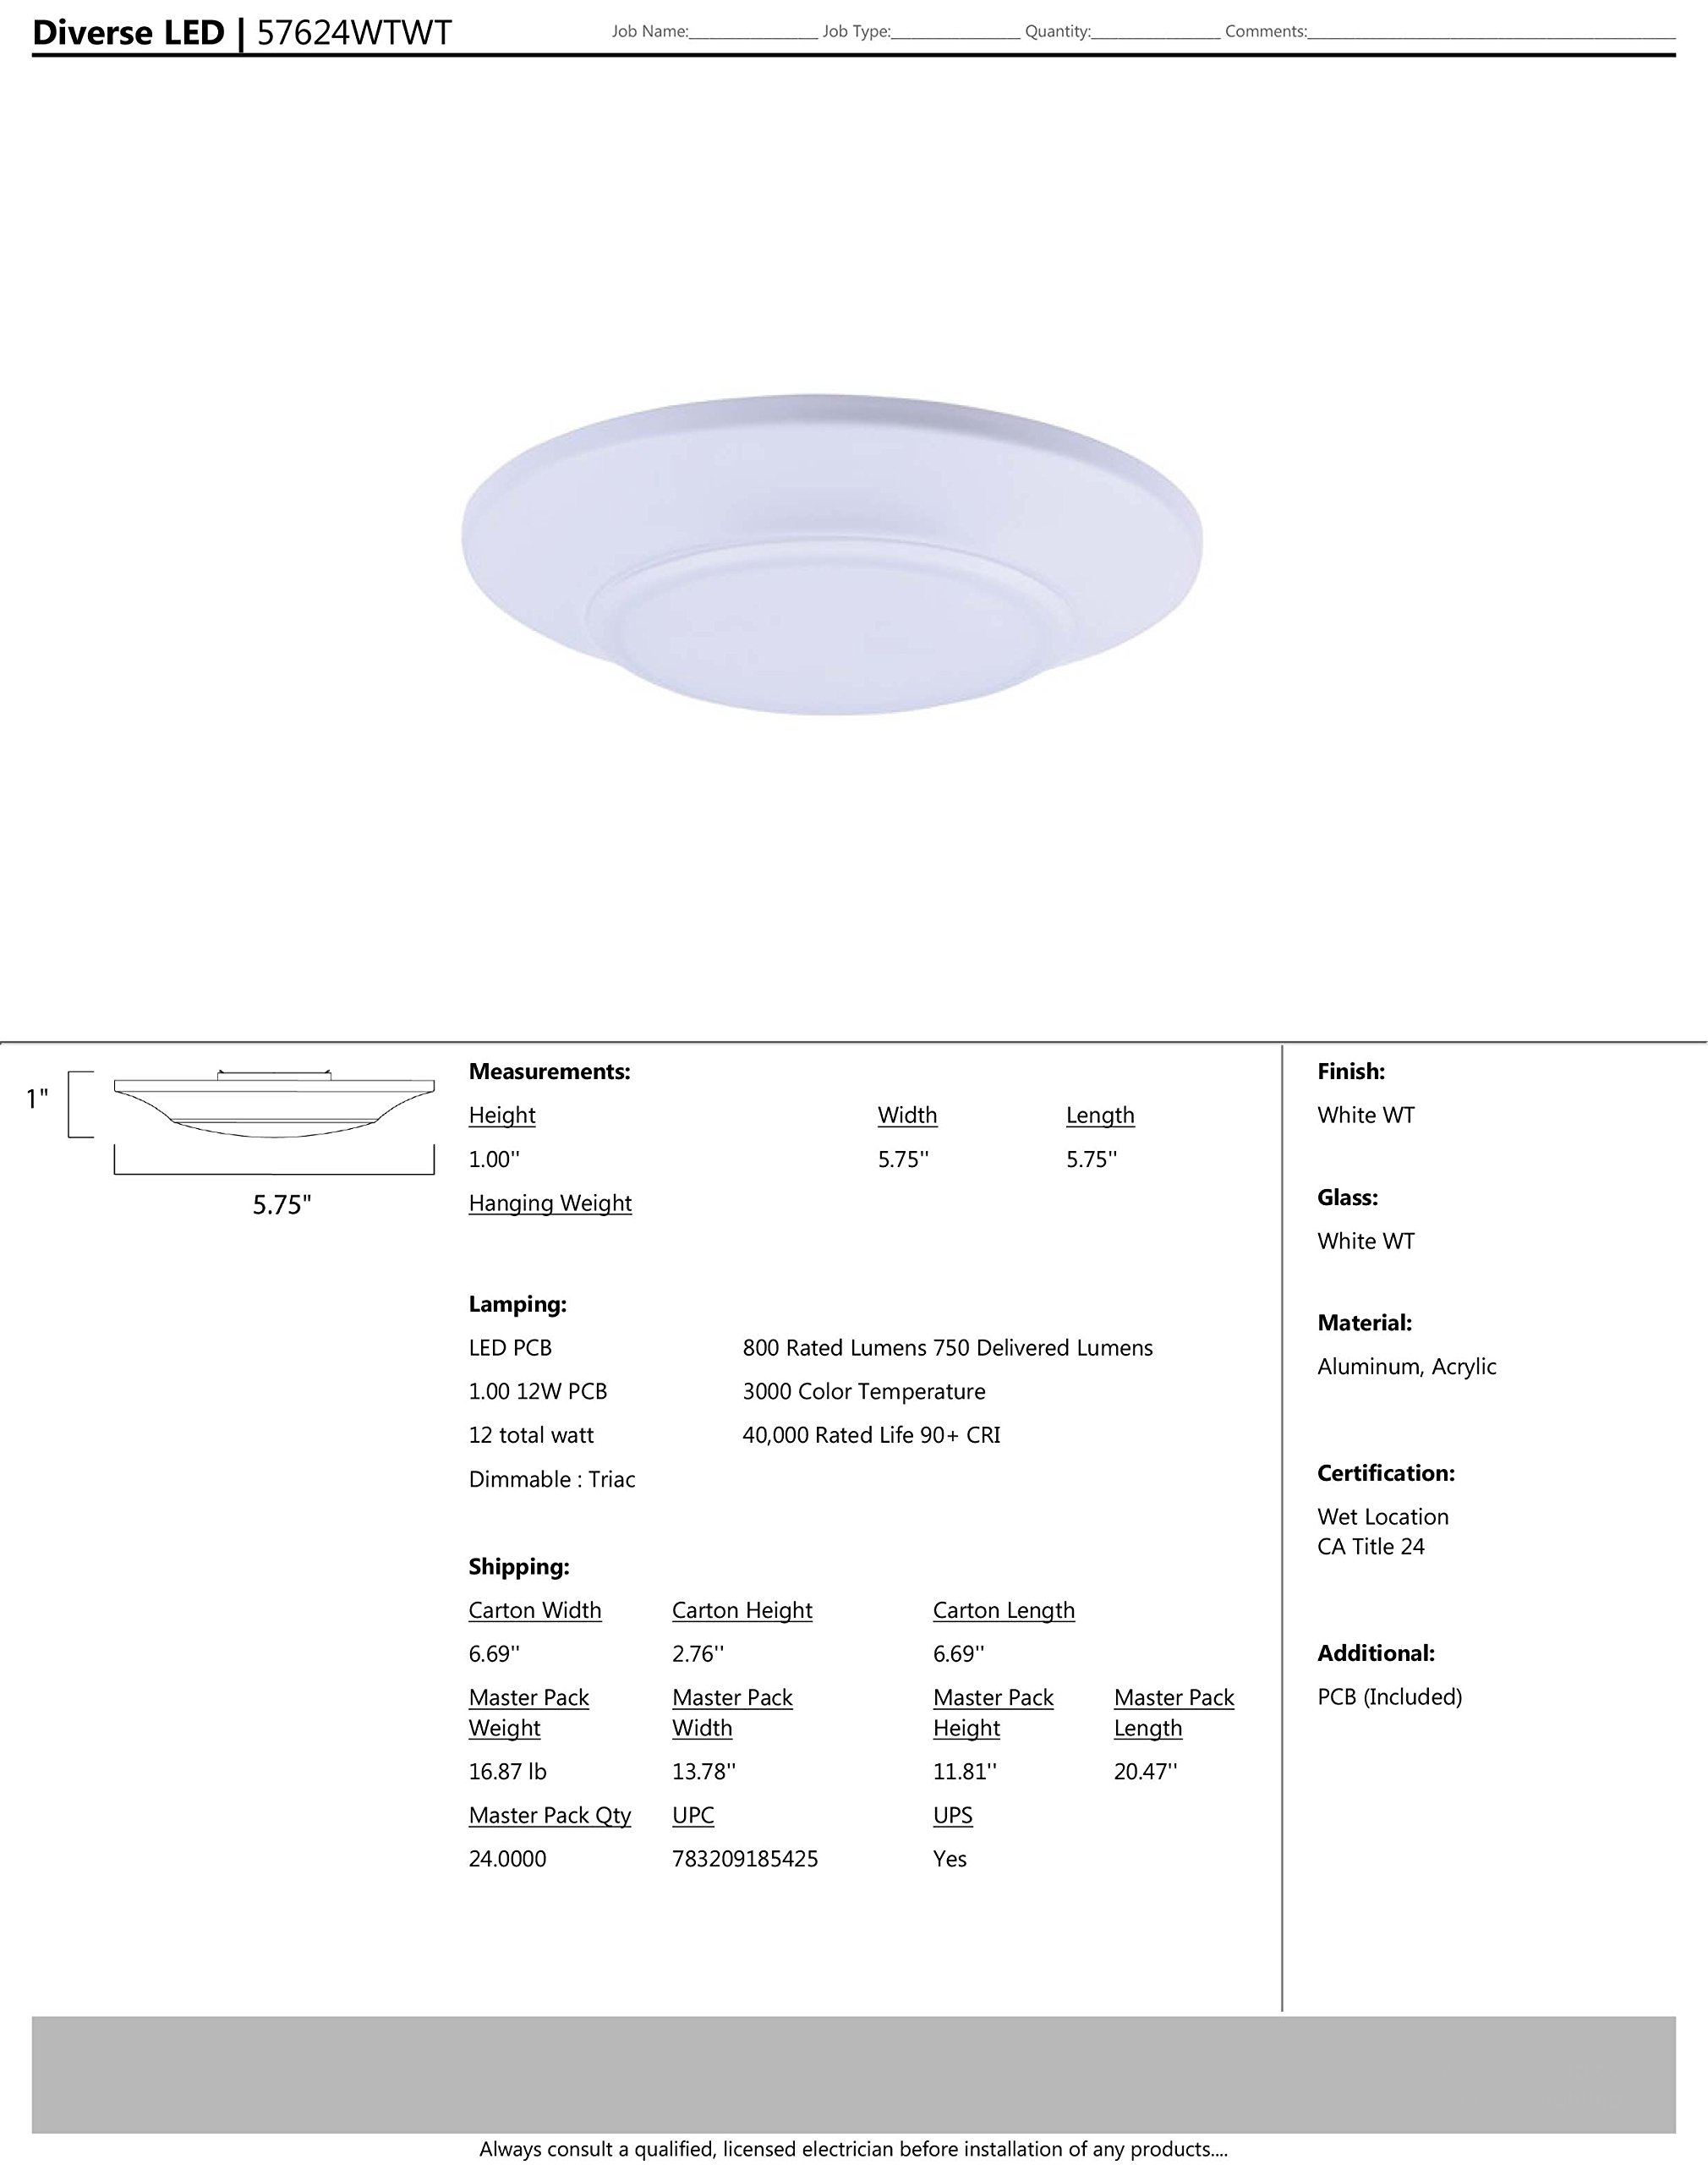 Maxim 57624WTWT Diverse LED Mini Flush Mount 3000K, White Finish, White Glass, PCB LED Bulb , 20W Max., Dry Safety Rating, 2700/3200K Color Temp, ELV Dimmable, Shade Material, 1400 Rated Lumens by Maxim Lighting (Image #2)